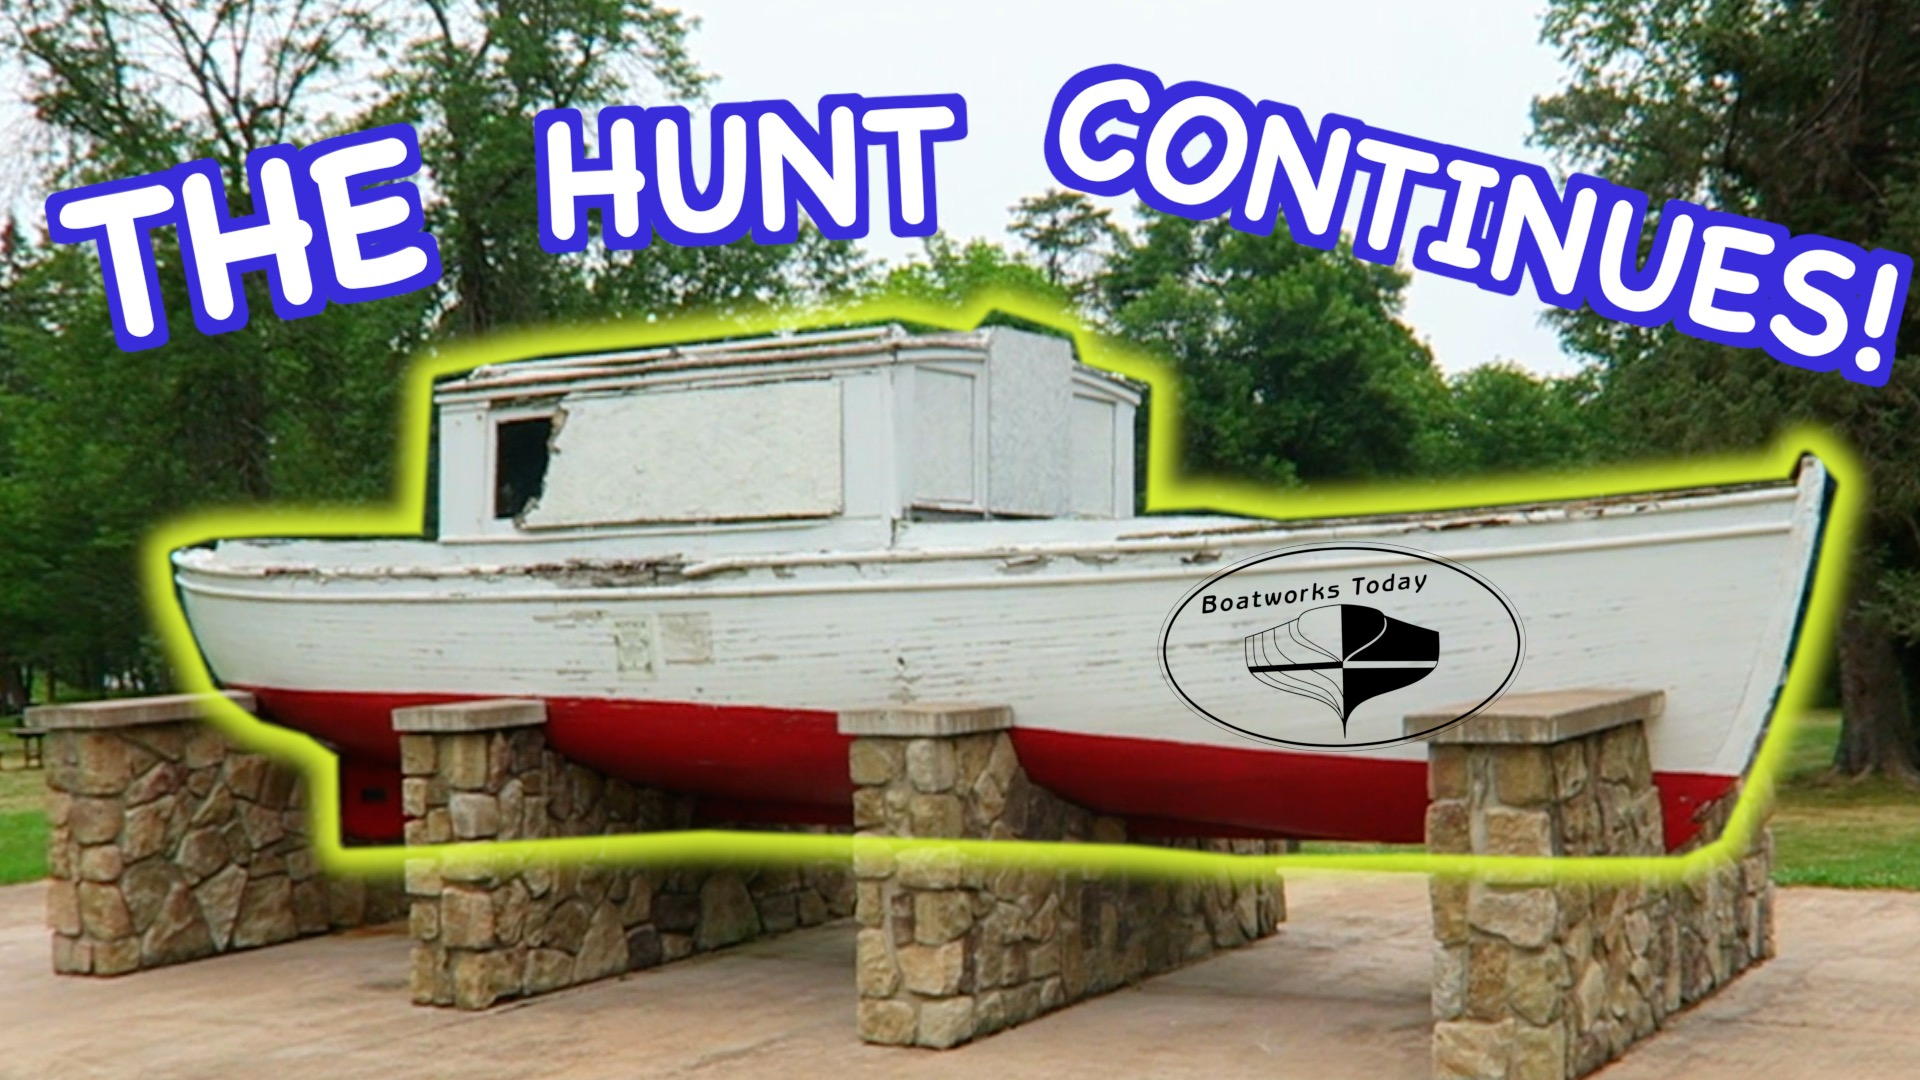 The Next Project Boat??  There's Awesome Maritime History In Michigan!